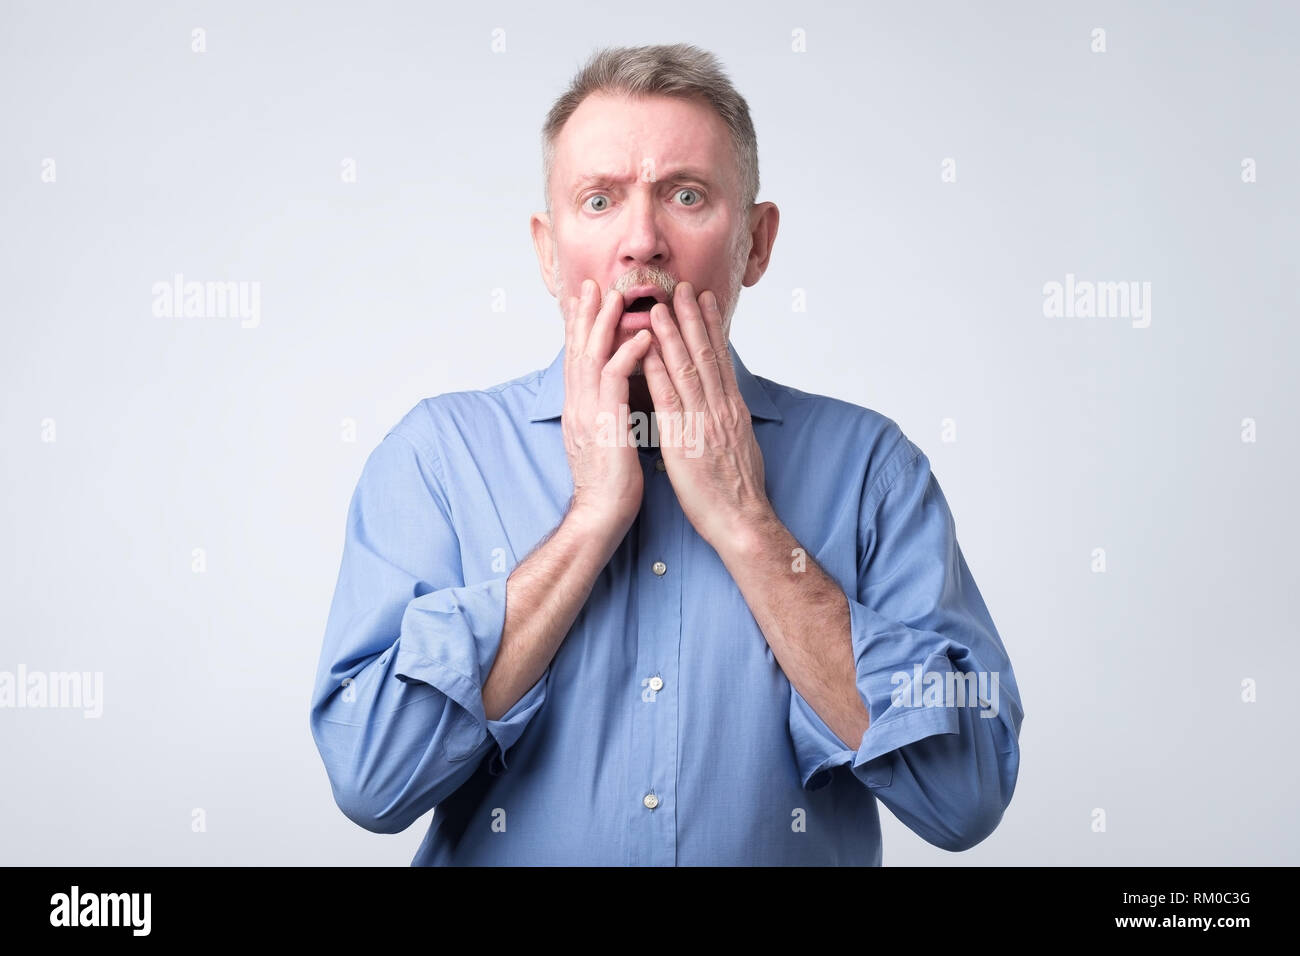 Senior european man with scared and anxious expression, bites finger nails - Stock Image